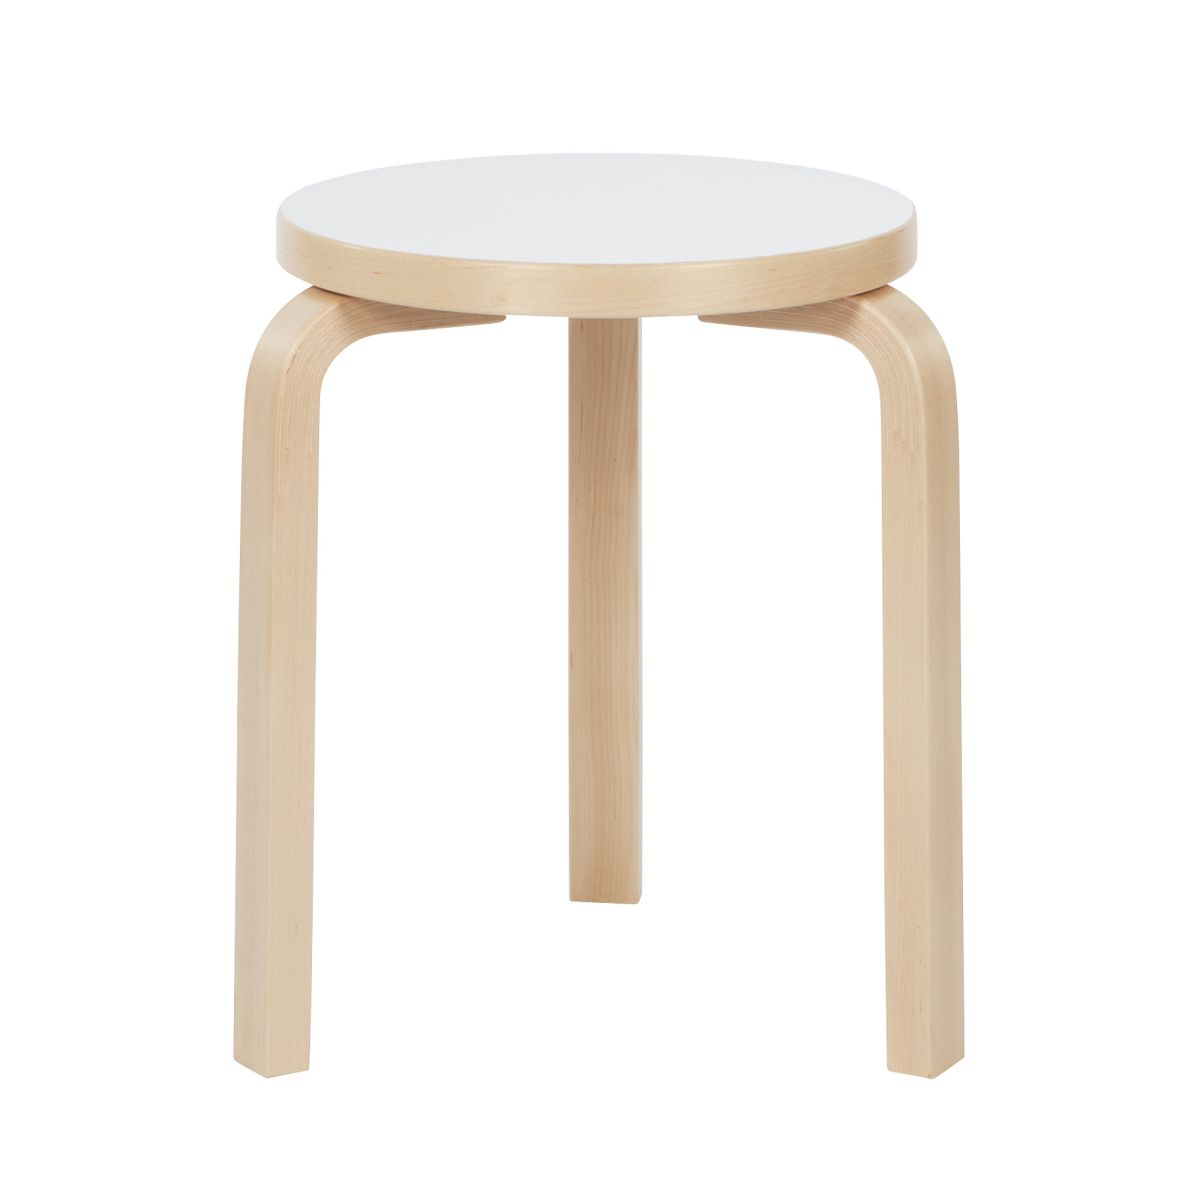 Stool-60-Legs-Birch-Seat-White-Hpl-2157368